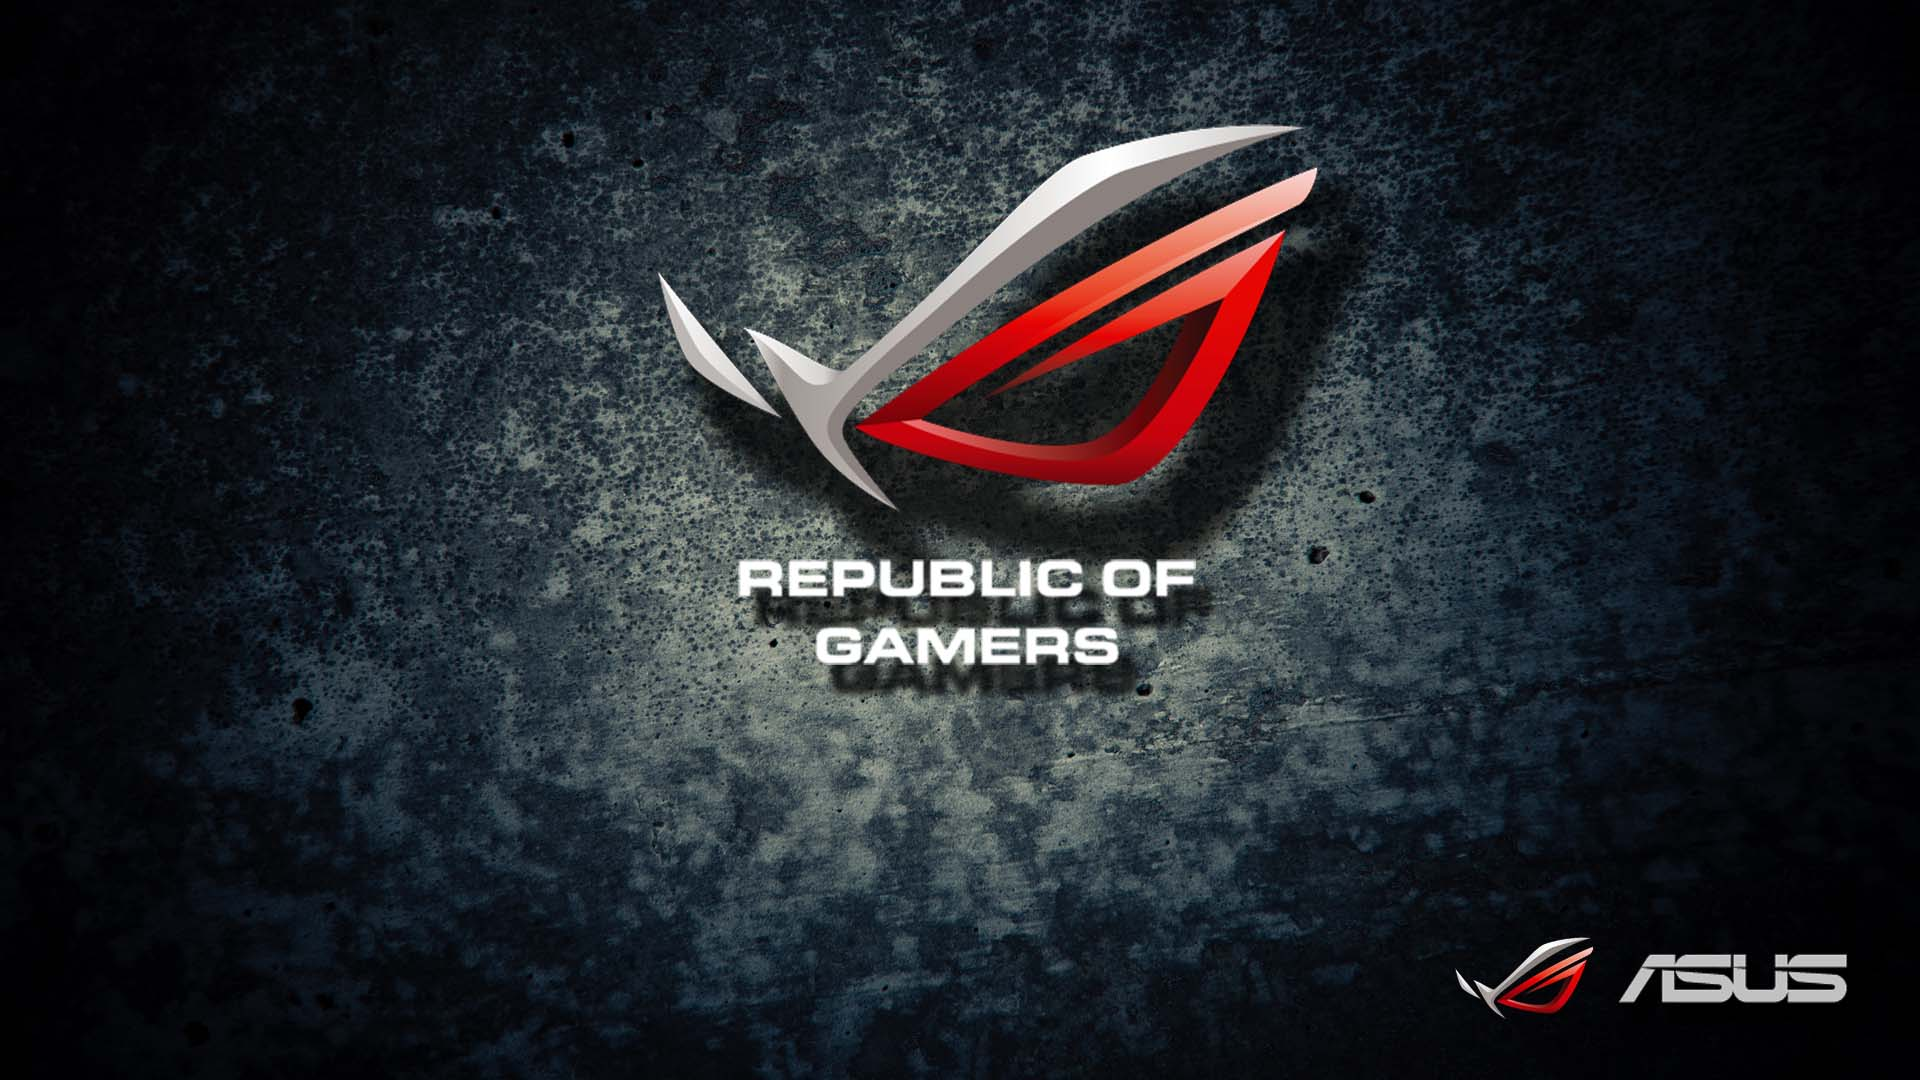 Asus Gaming Wallpaper HD